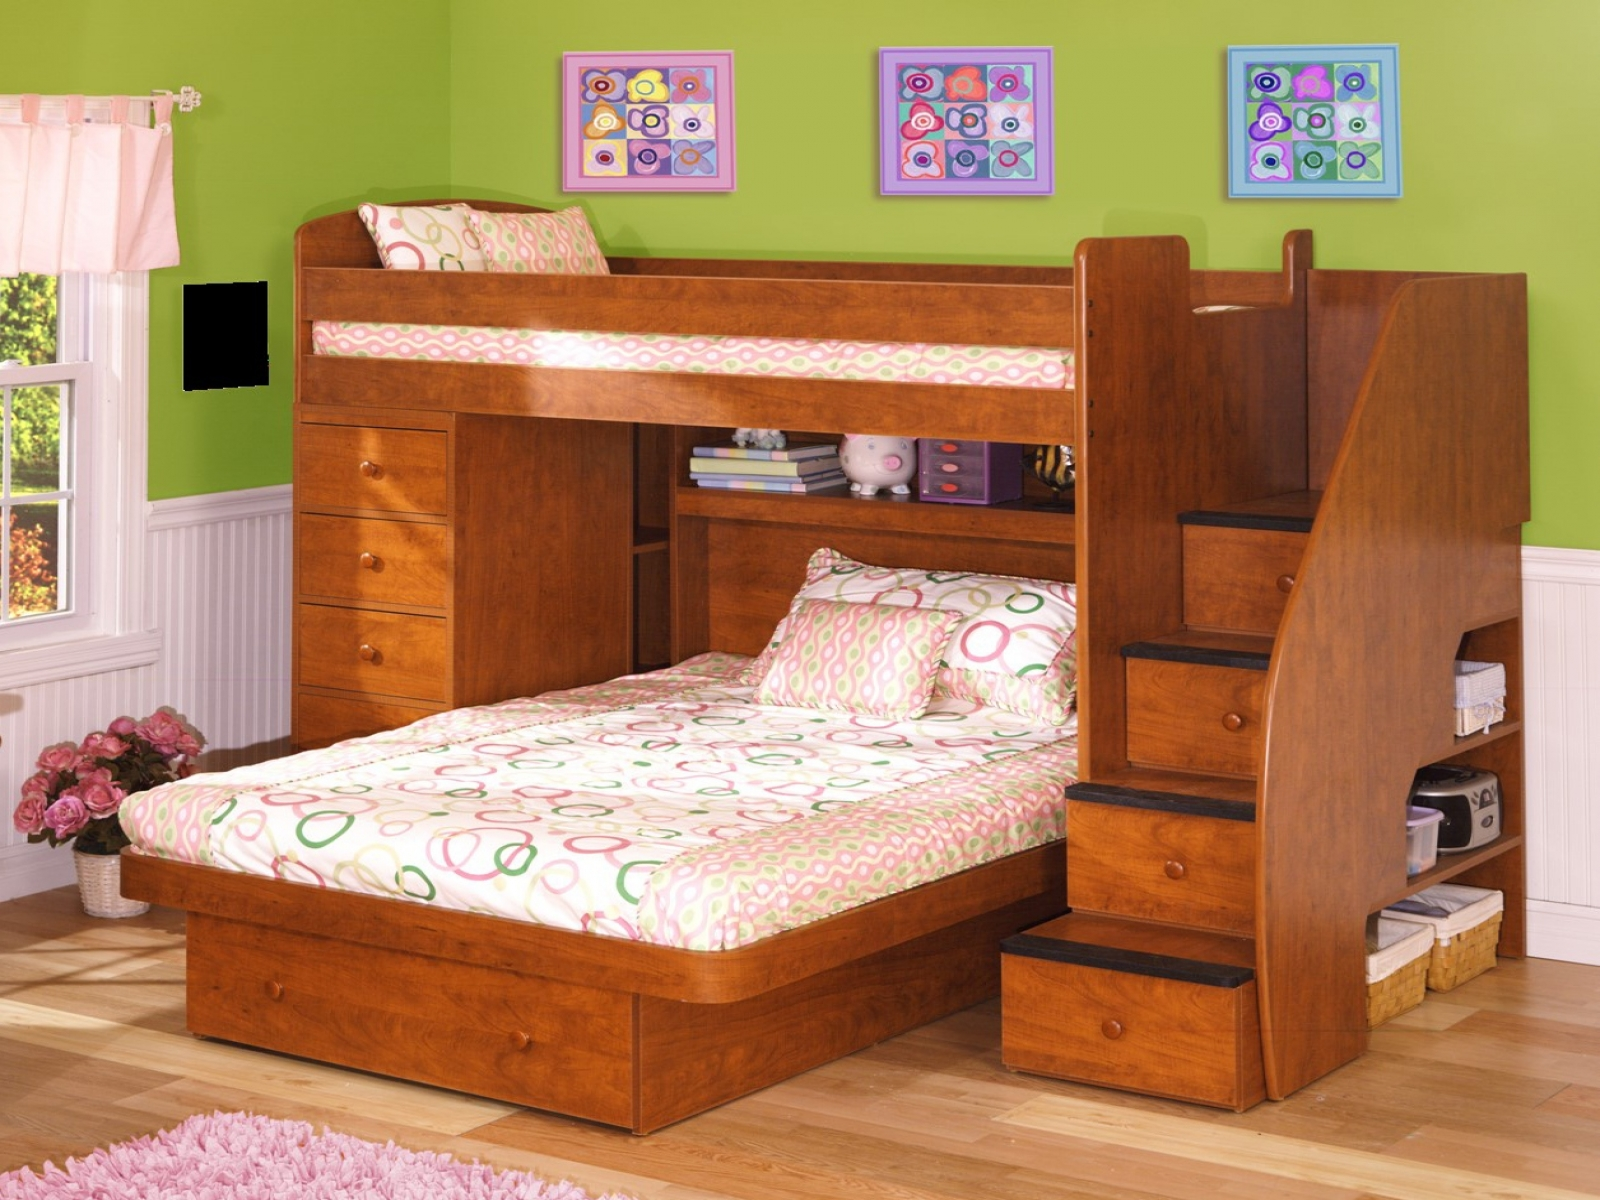 L-Shaped-Bunk-Beds-For-kids